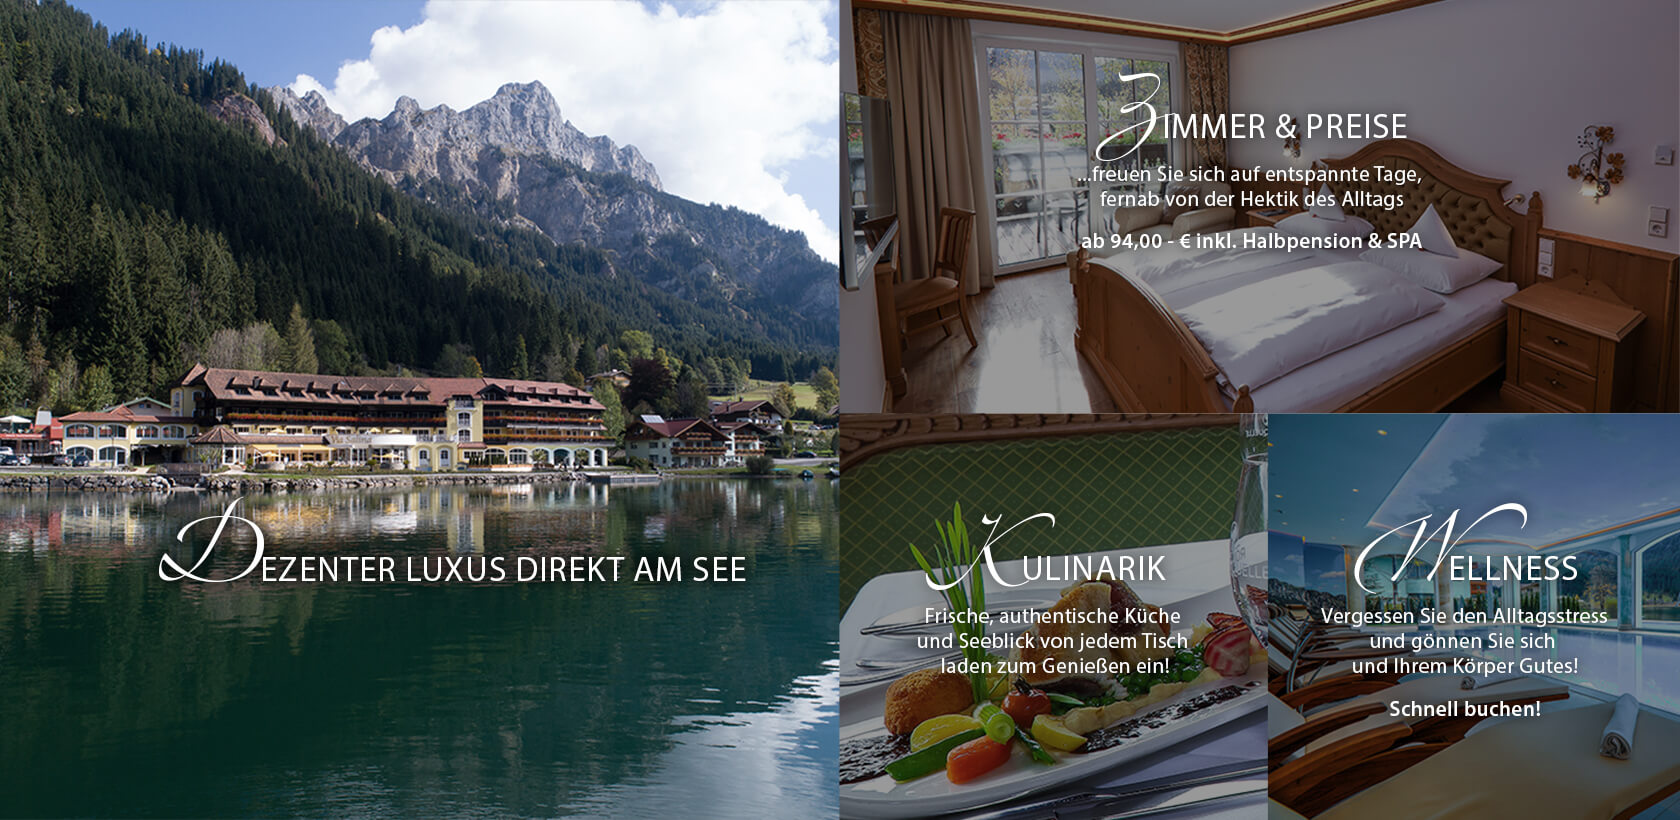 Via Salina – Hotel am See